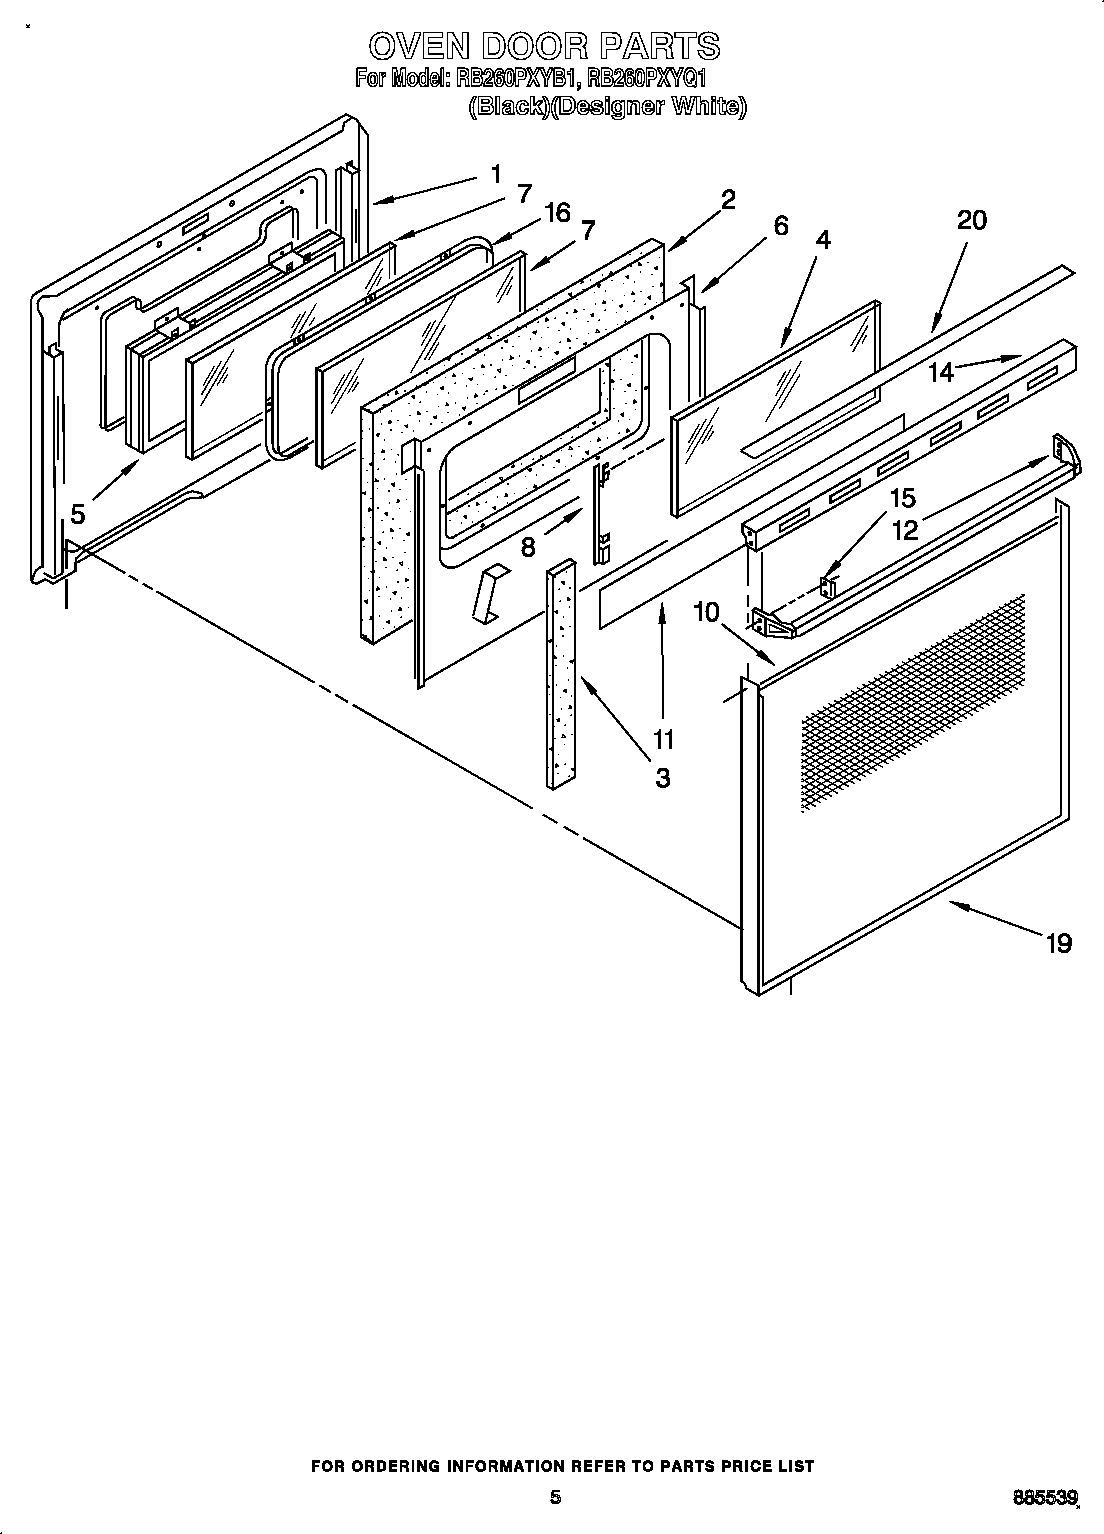 Whirlpool Oven Door Parts Diagram